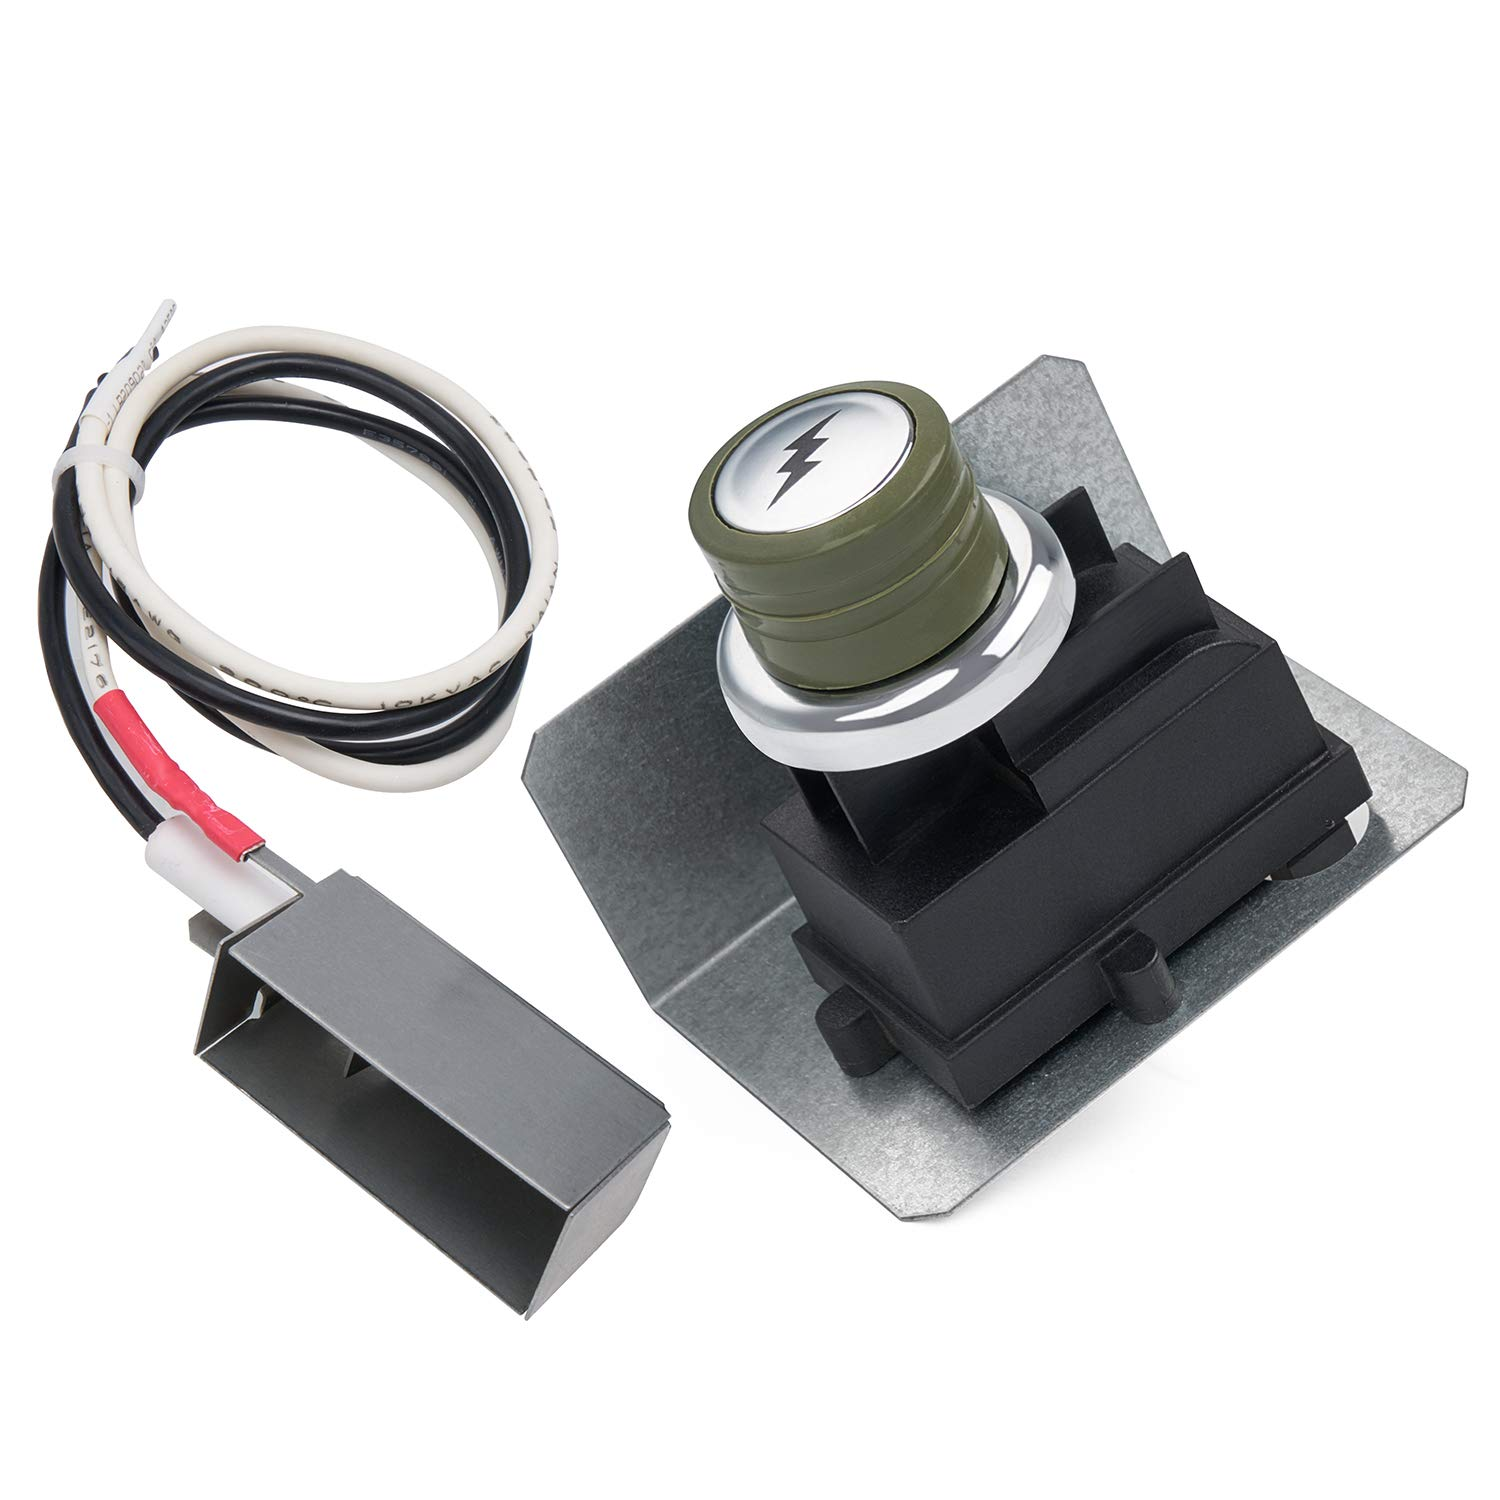 GASPRO 67726 Grill Igniter Kit Replacement for Weber Genesis 300 Grills (Year 2007) Genesis E/S-310 E/S-320 Ignitor Replacement Parts Ignition Module Metal Spark Box